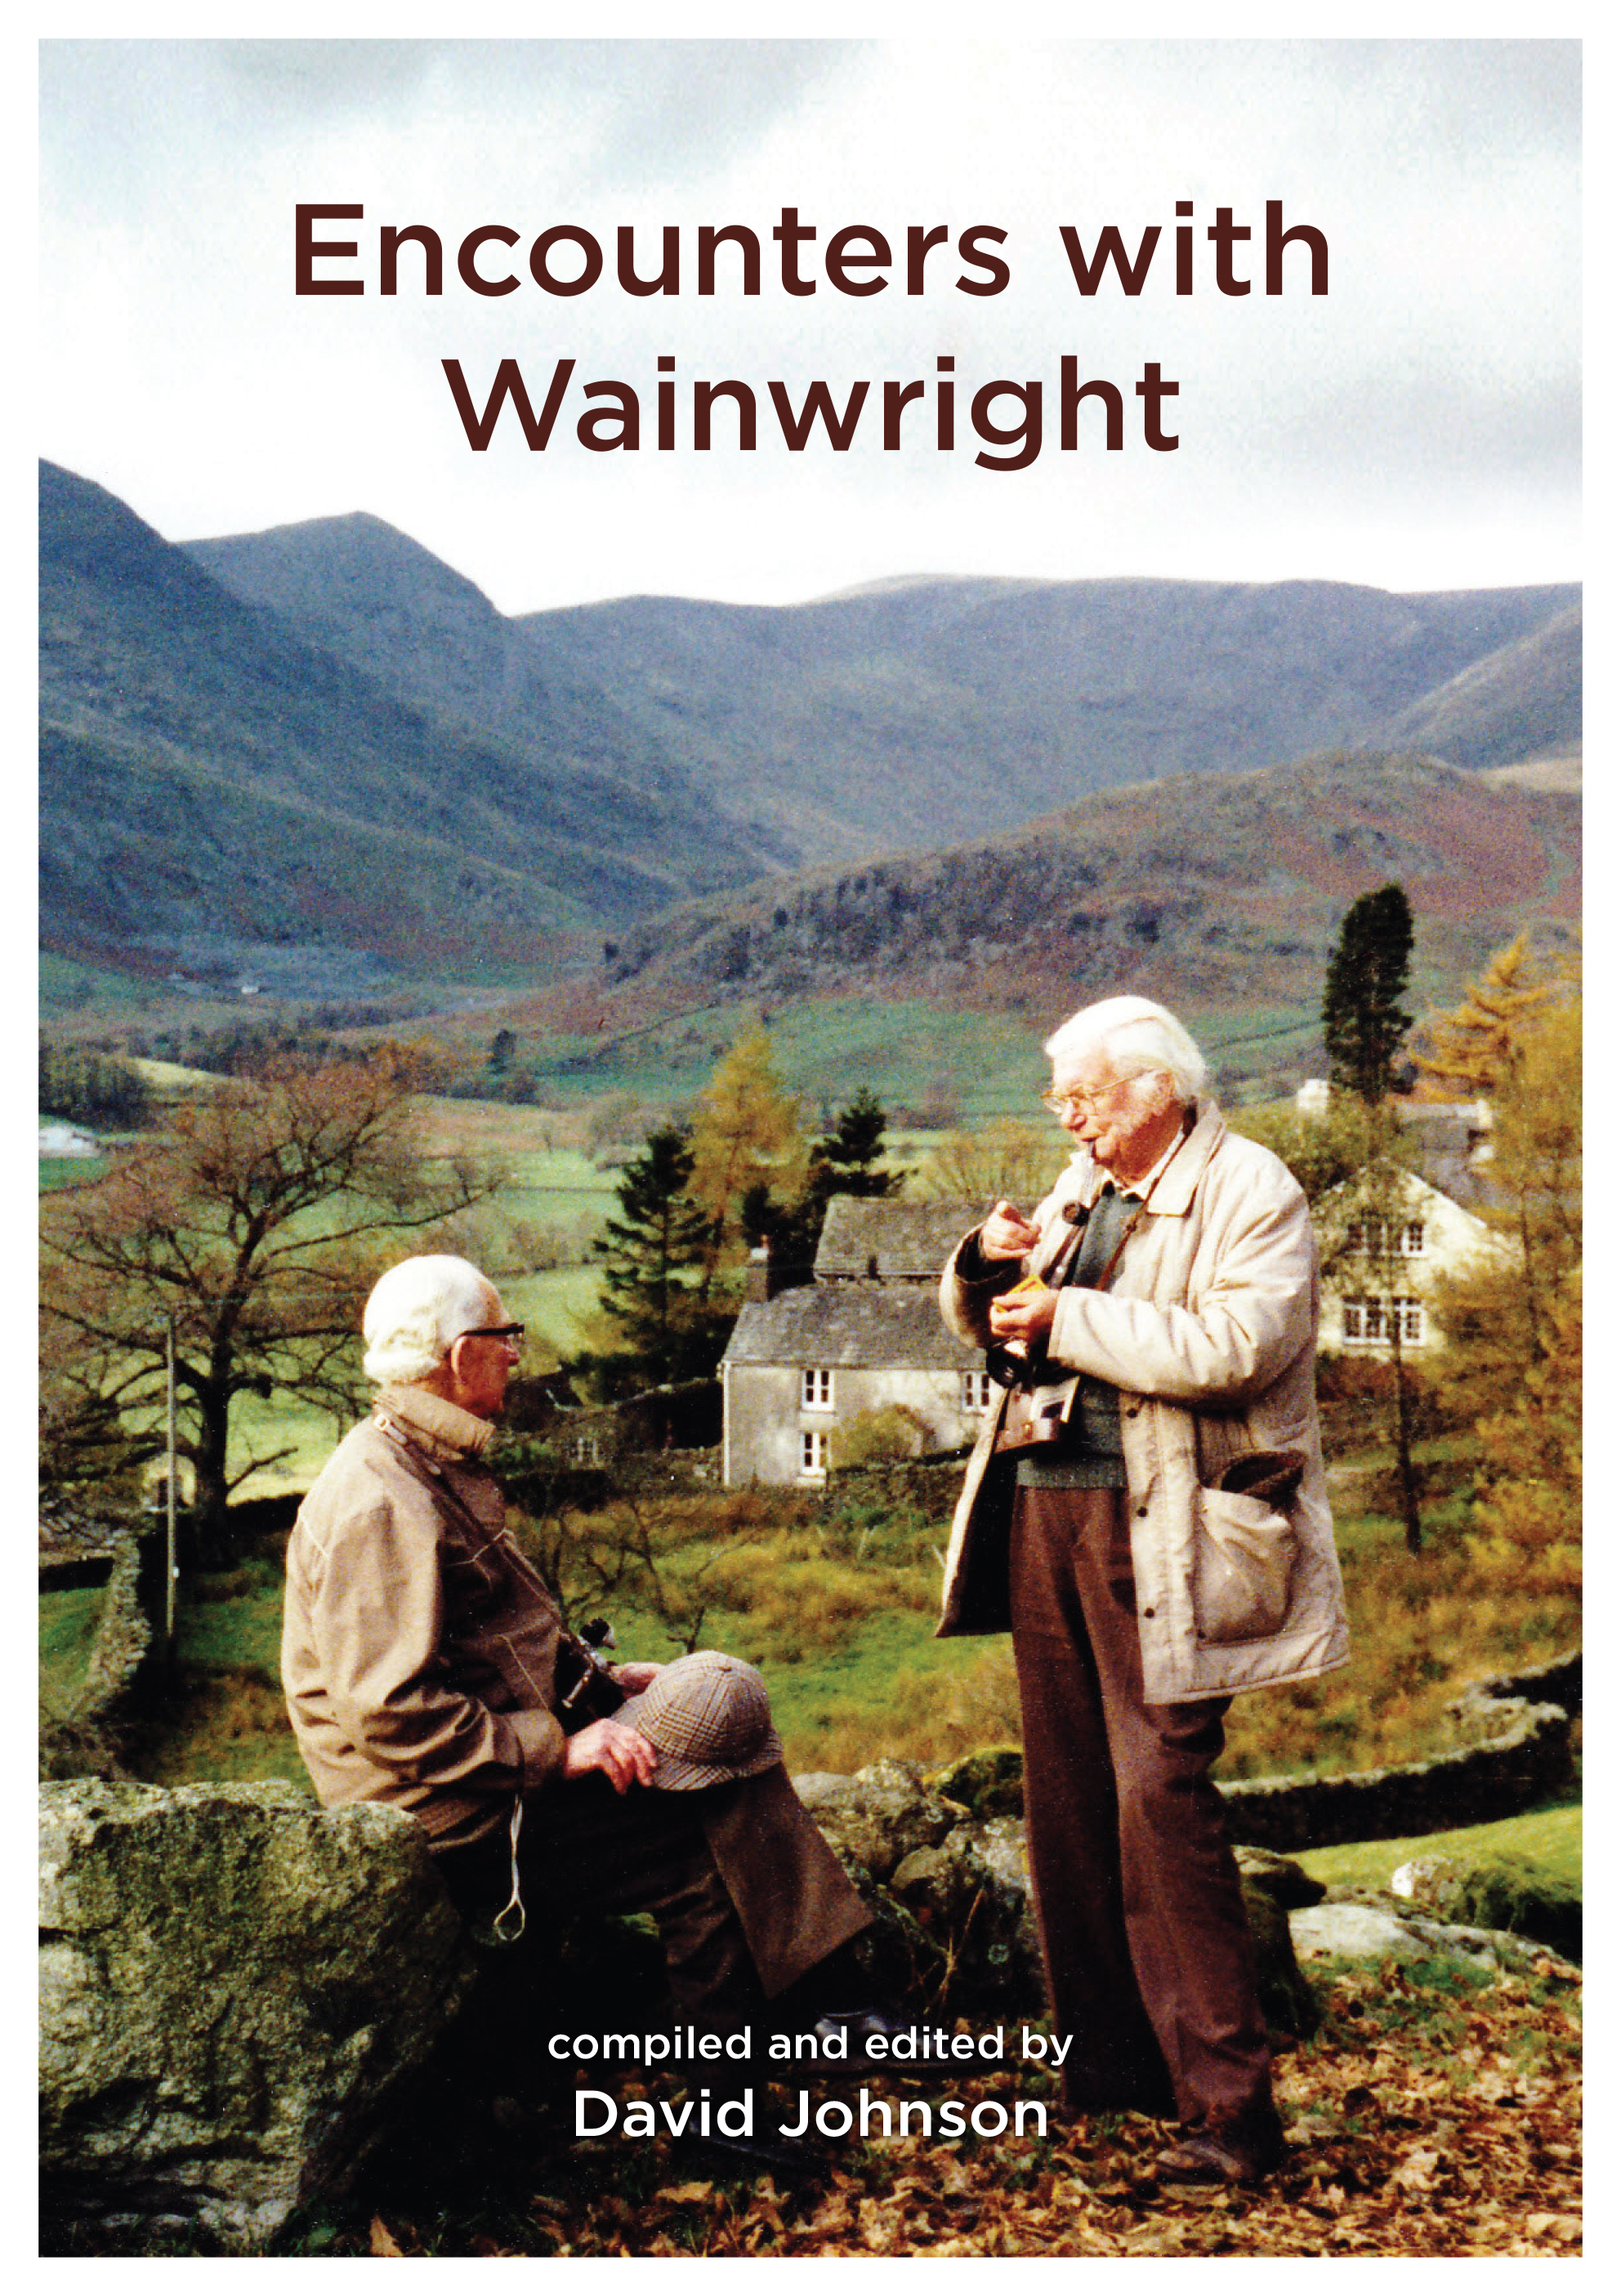 Encounters with Wainwright